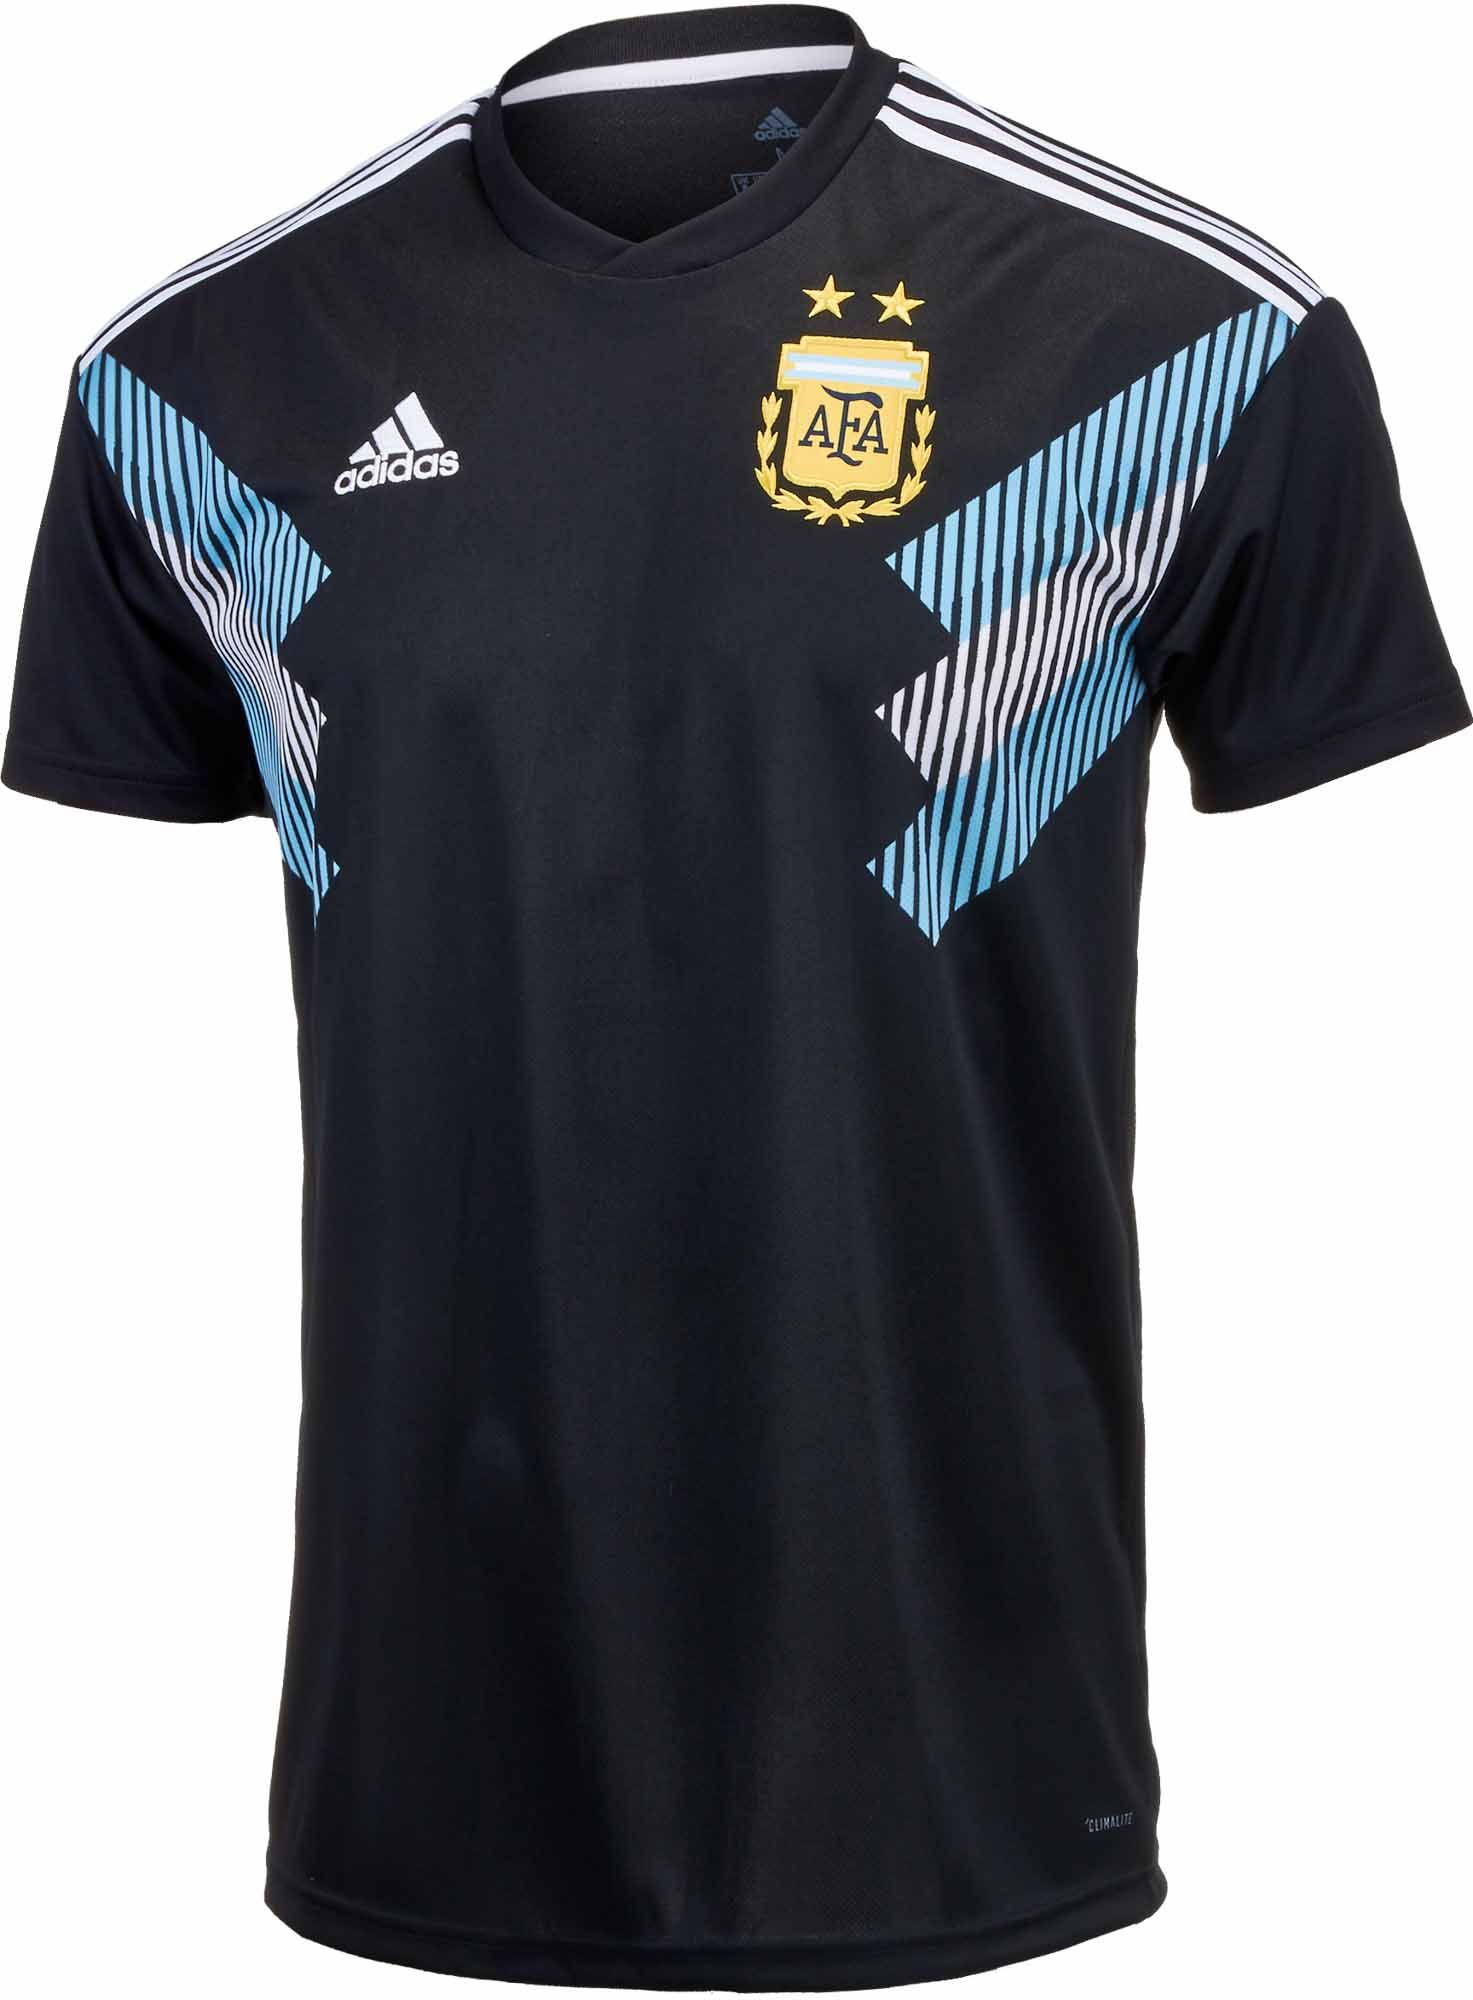 466ac8337b3 2018 adidas Argentina Away Jersey. Buy it from SoccerPro